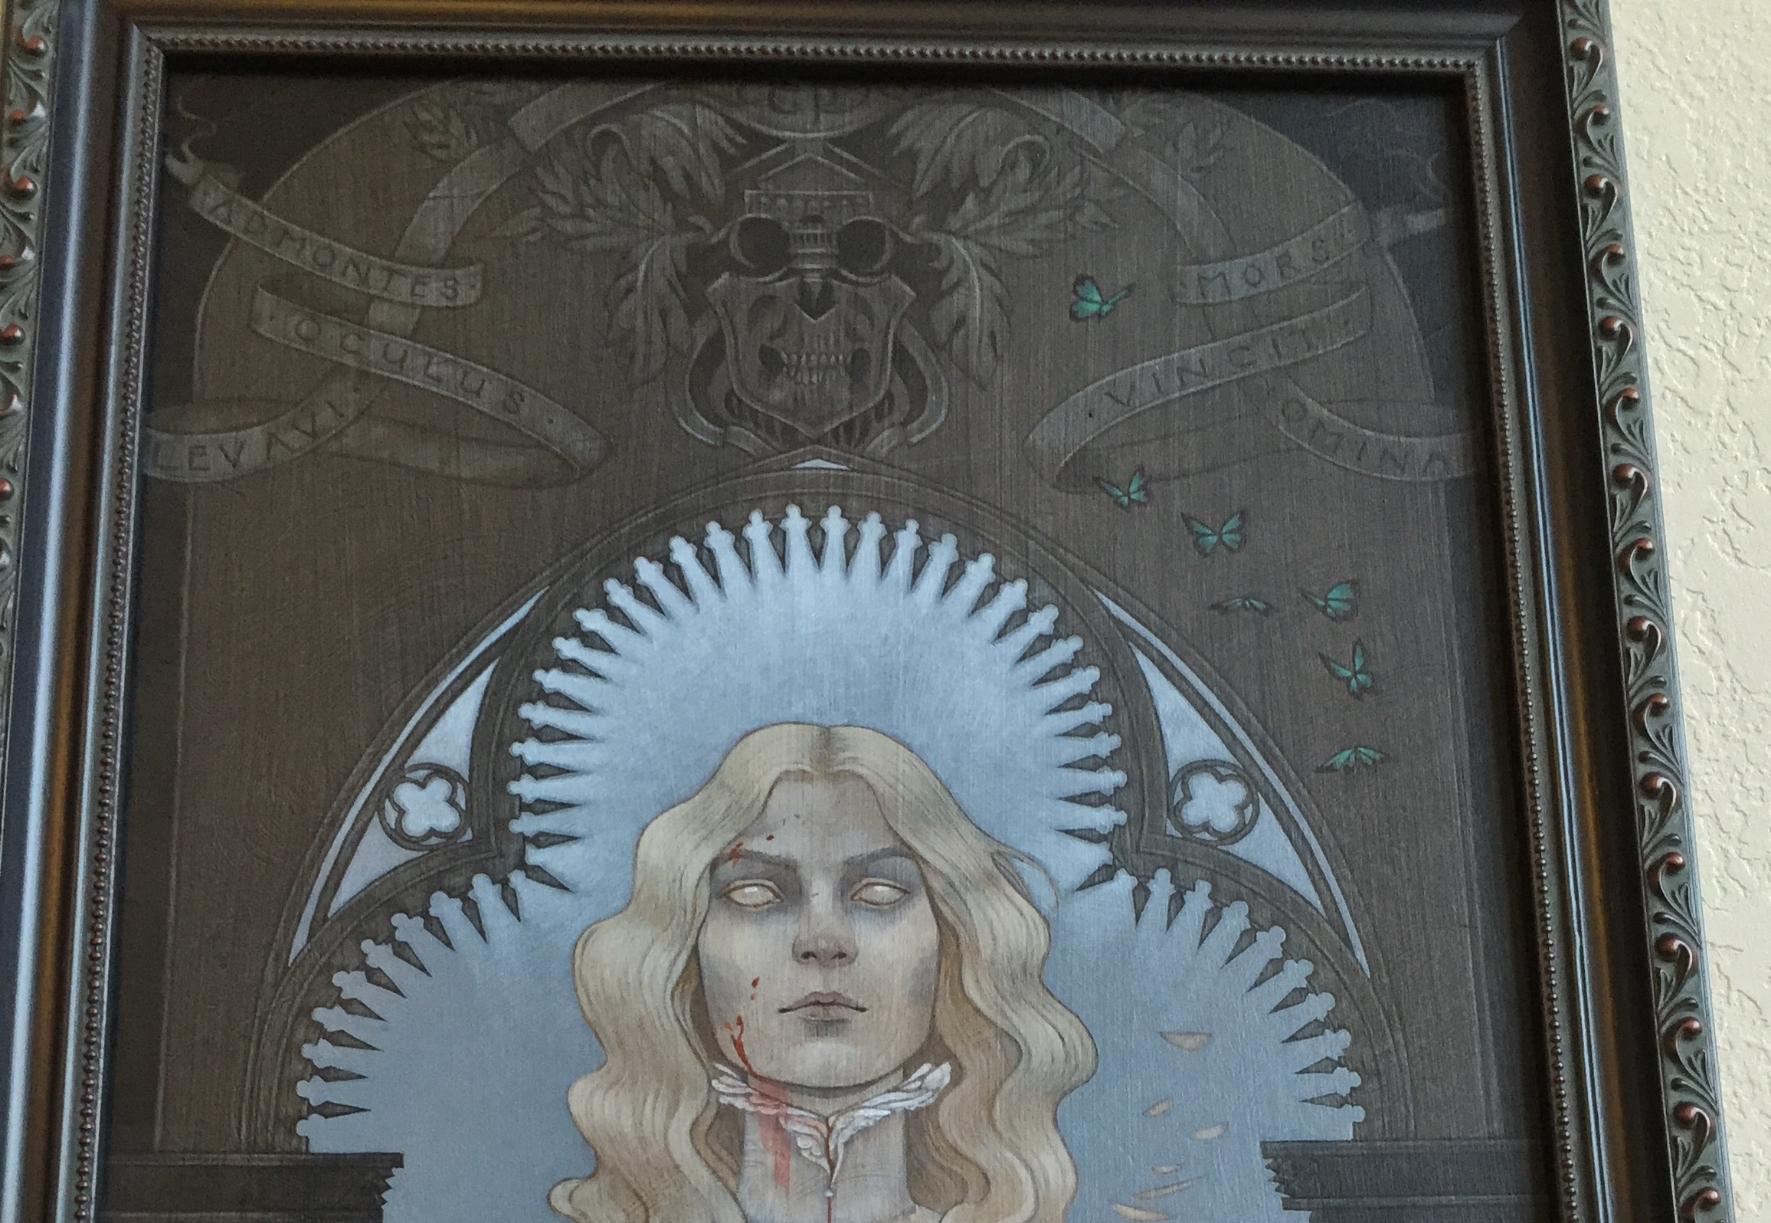 Detail of my piece for the show inspired by 'Crimson Peak'.